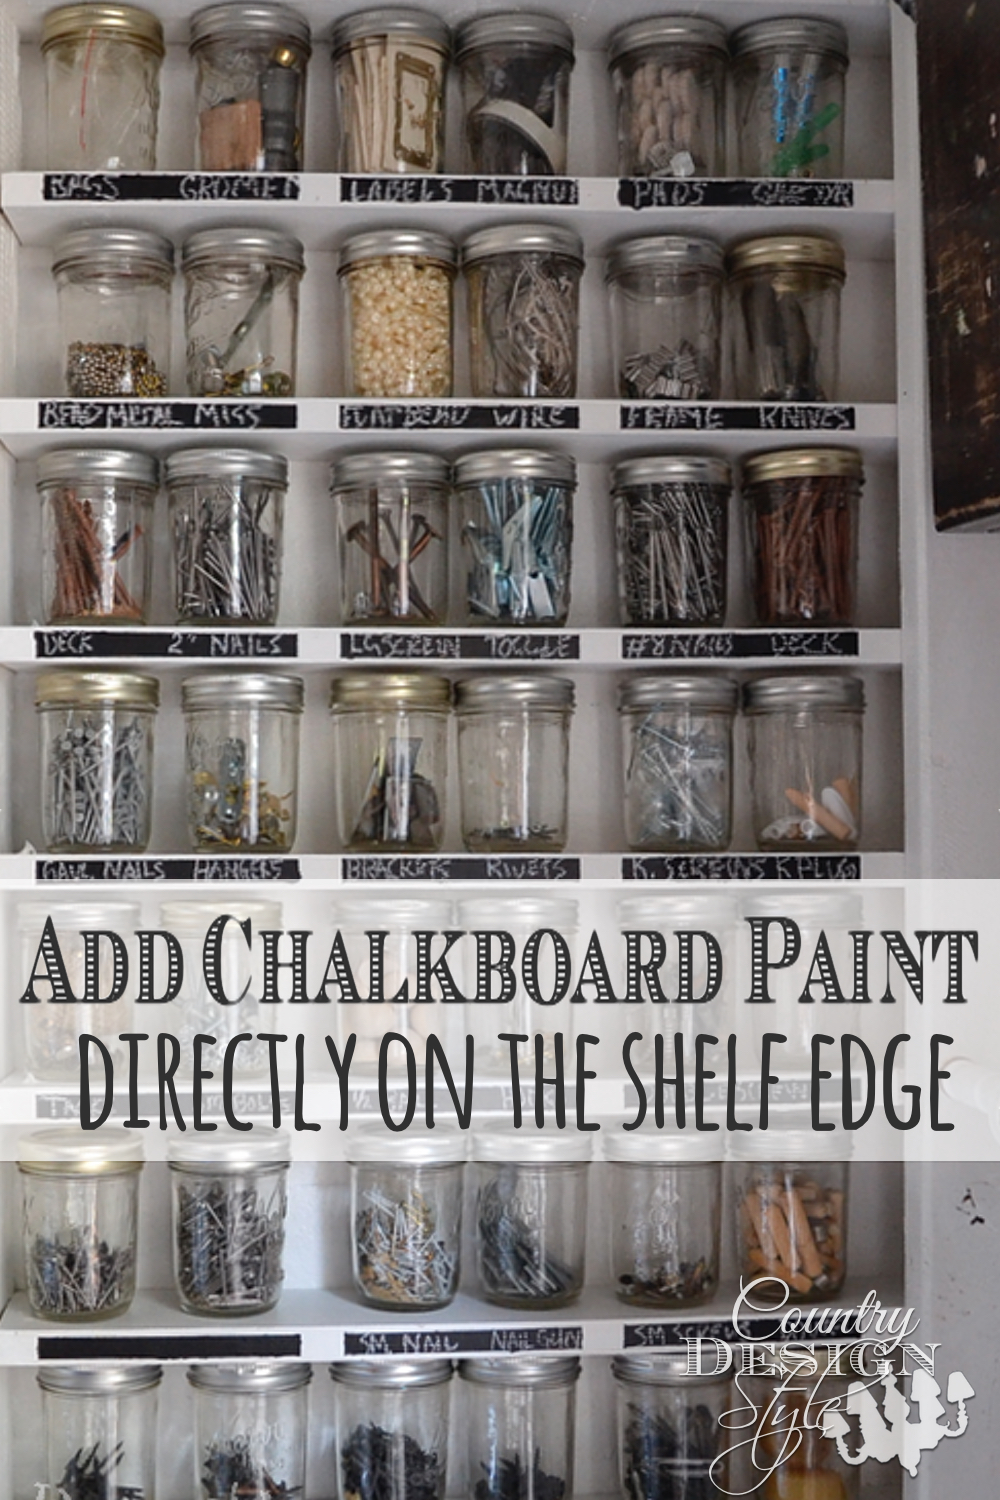 Easy way to stay organized. Add chalkboard paint directly on the shelf edge. Click to see the easy way I did this. Country Design Style.